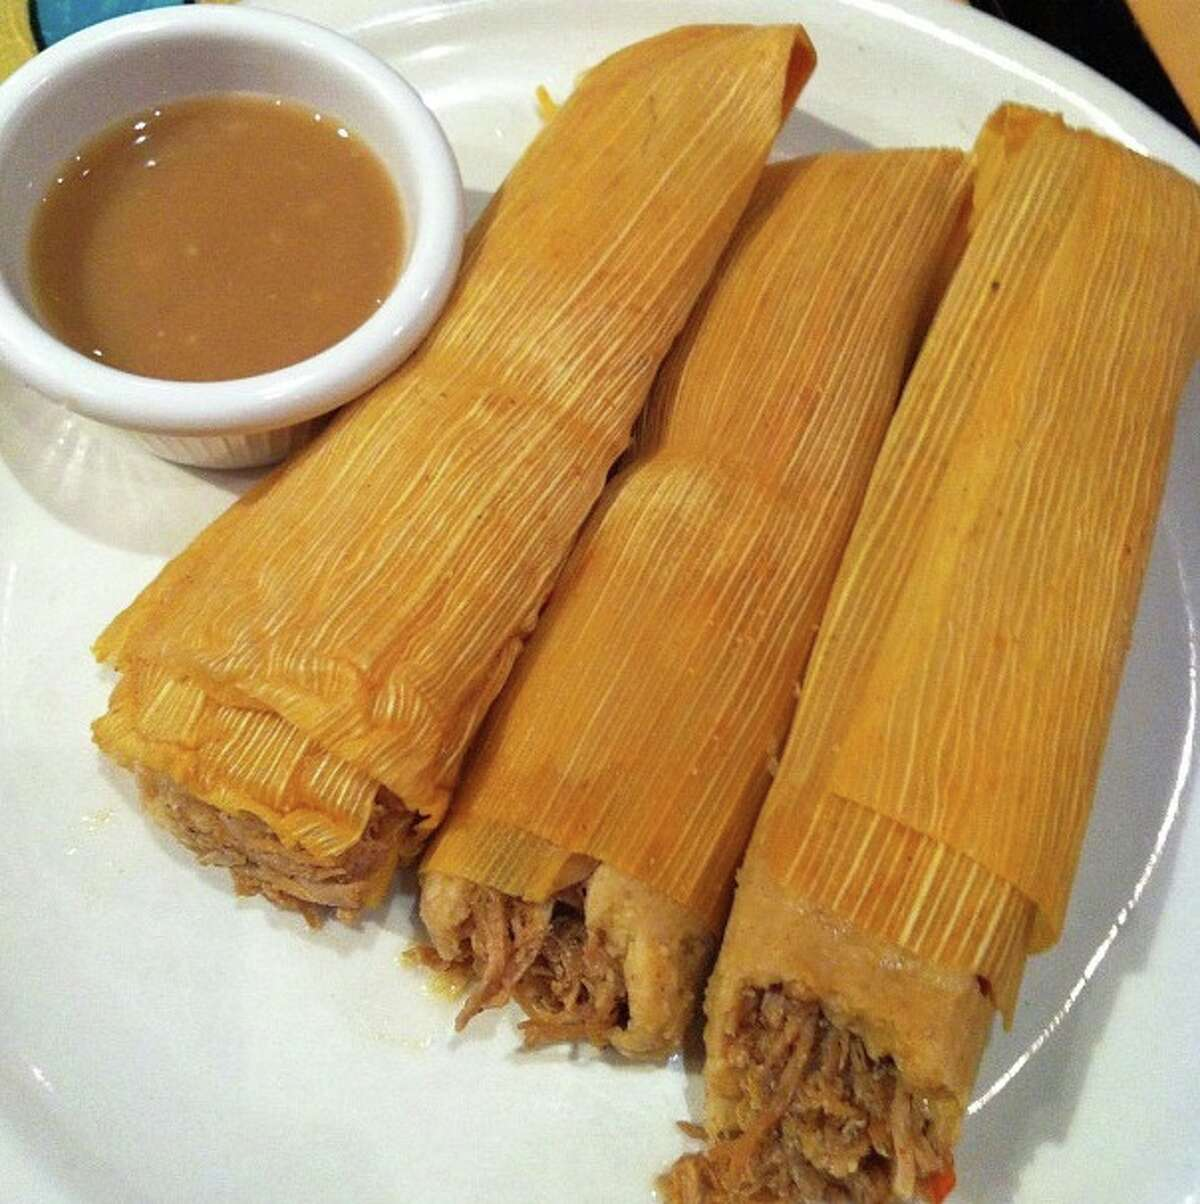 Tamales While they may not work everywhere, making and eating tamales for the holidays is a Texas tradition. They're easy to store, carry and fun to eat.